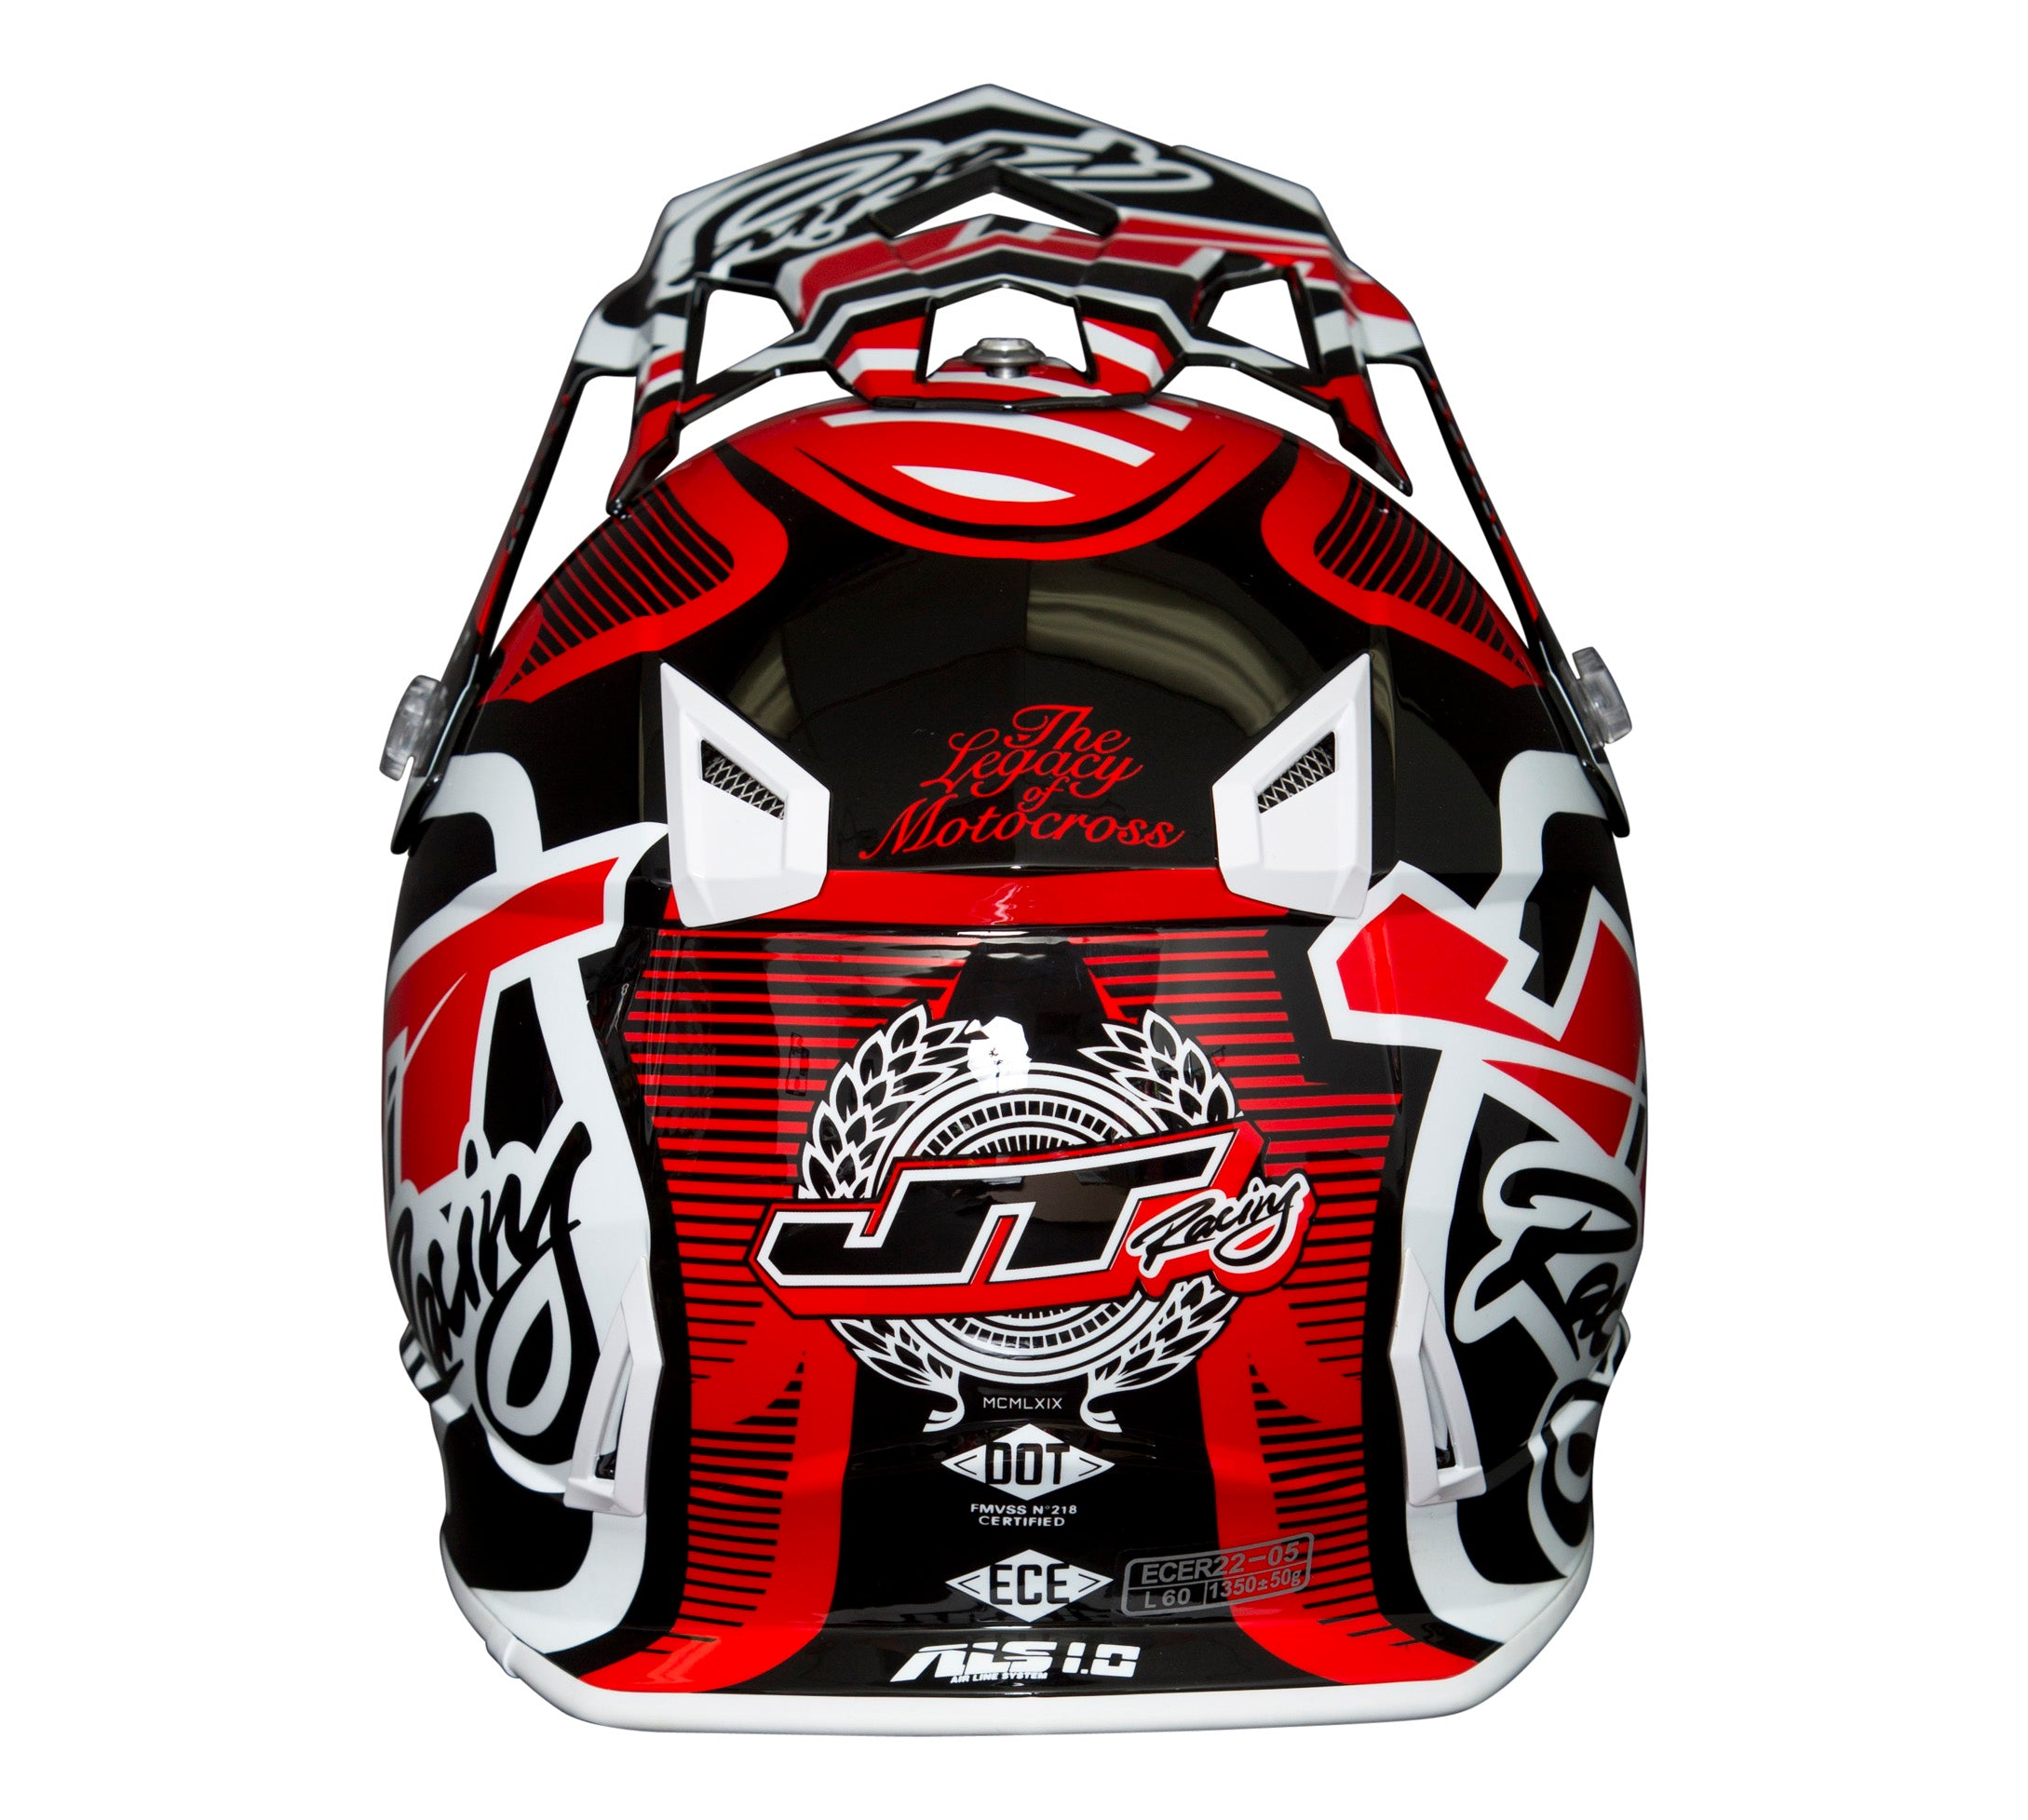 JT RACING USA  ALS1.0 Helmet, Red/Black